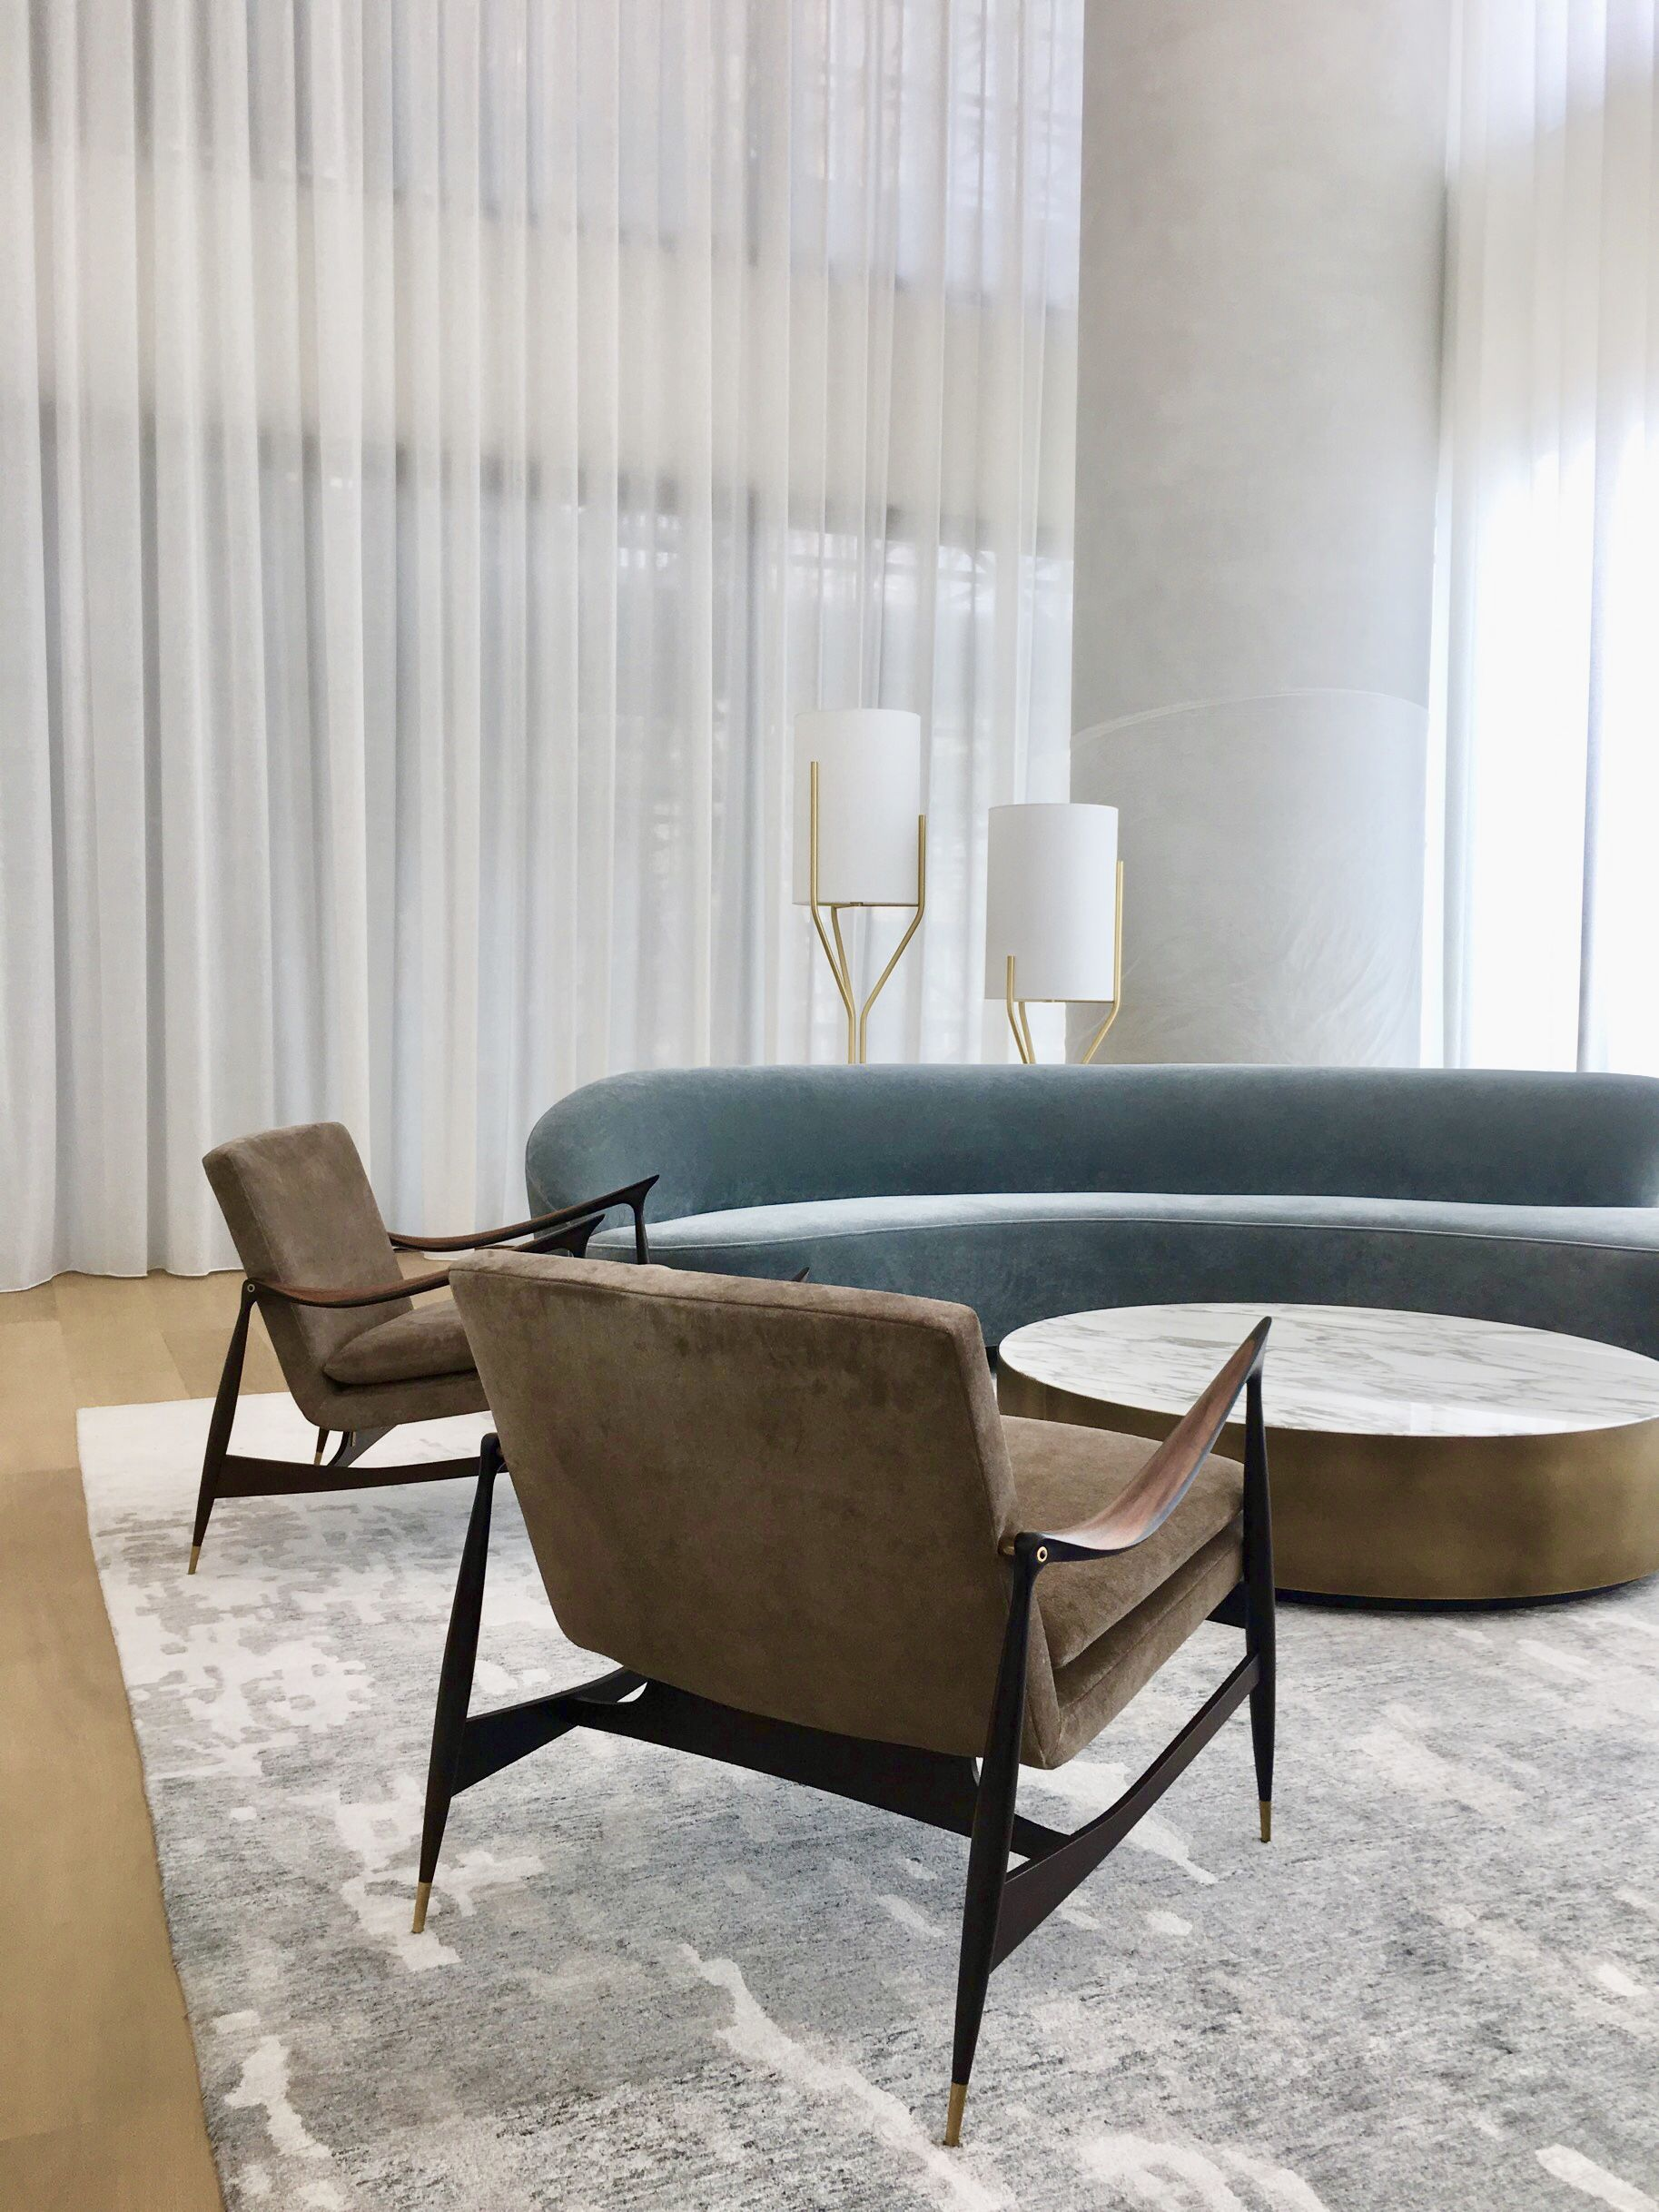 Pair Of Dinamarquesa Lounge Armchairs By Jorge Zalszupin Available At Espasso Midentur Contemporary Living Room Furniture Living Room Modern Houzz Living Room